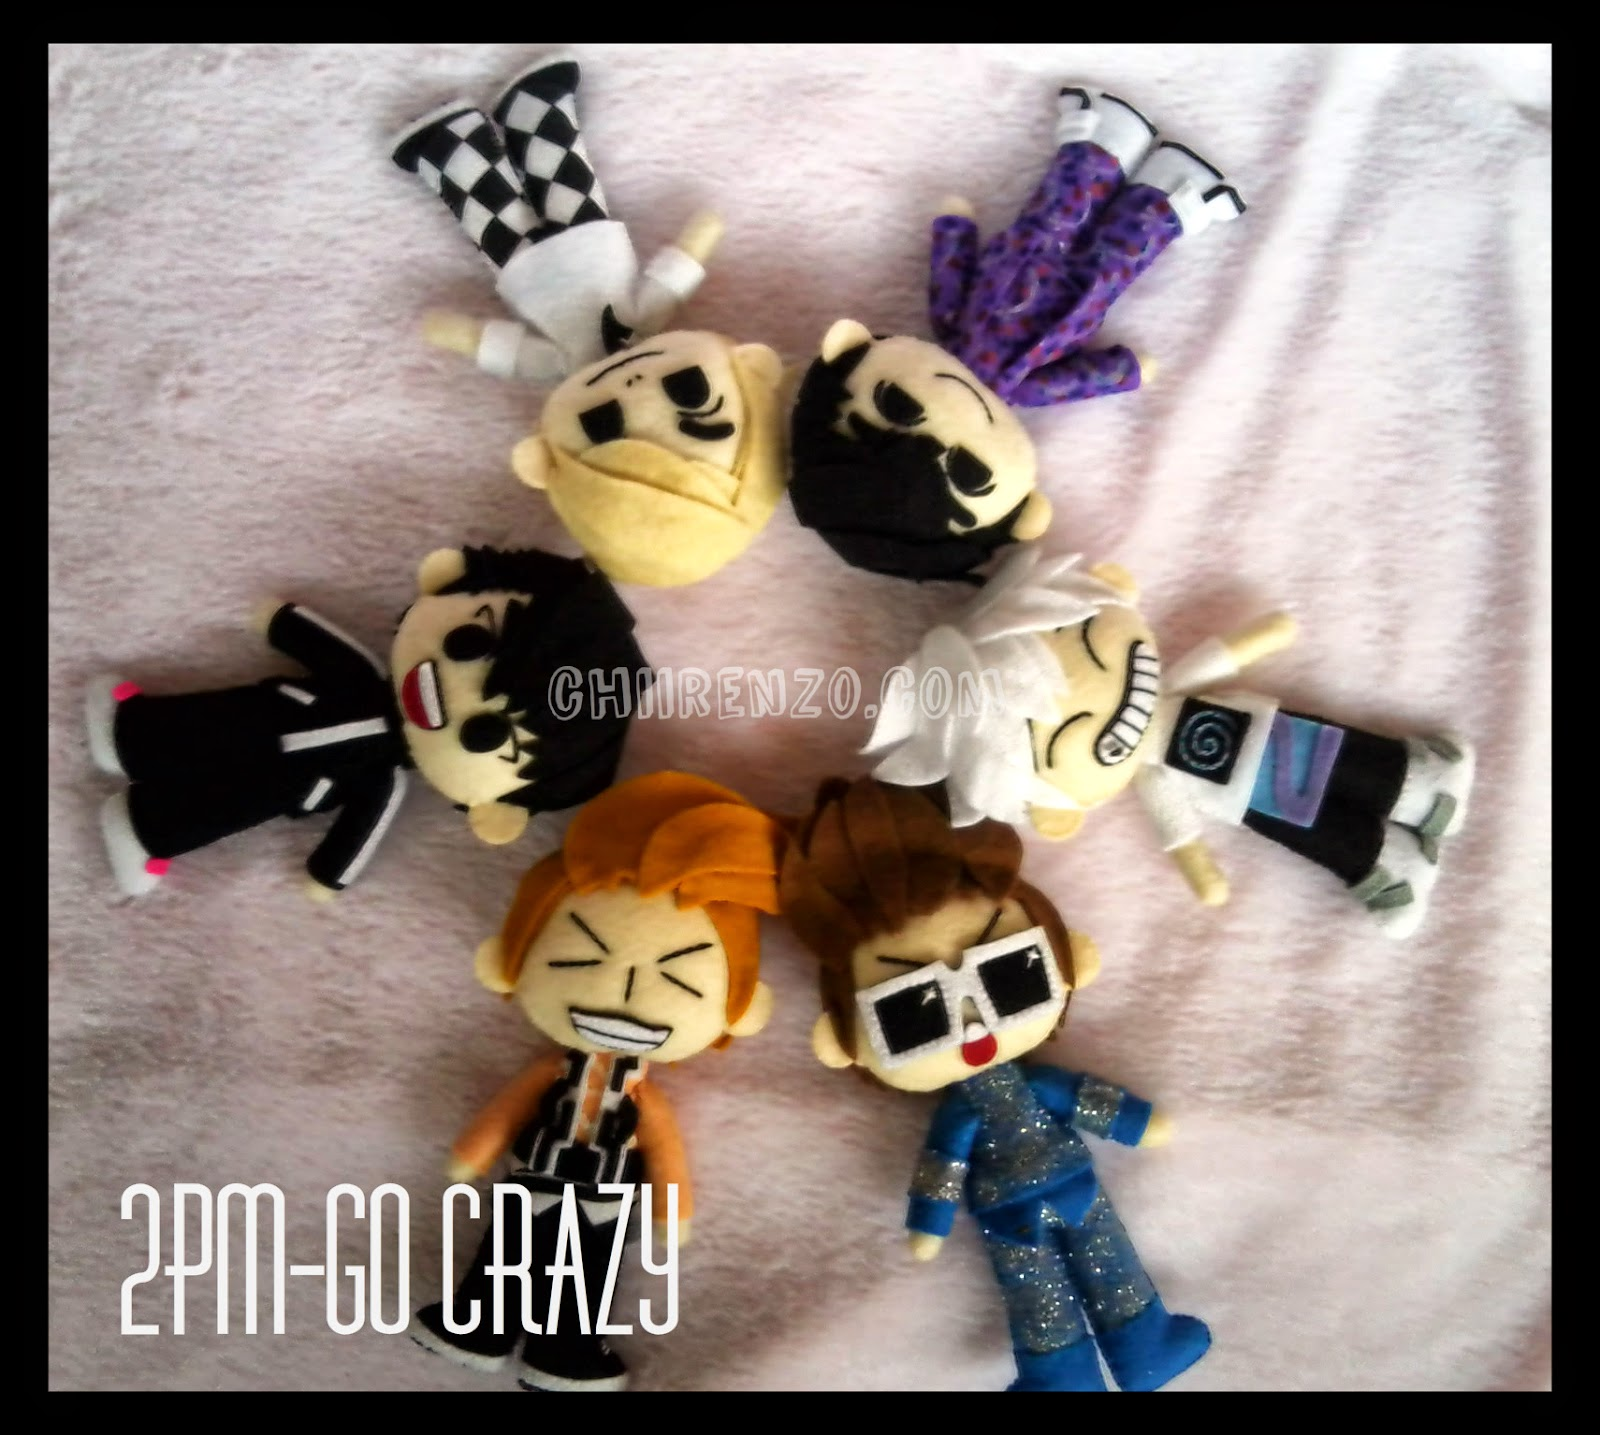 Go crazy 2pm plush doll